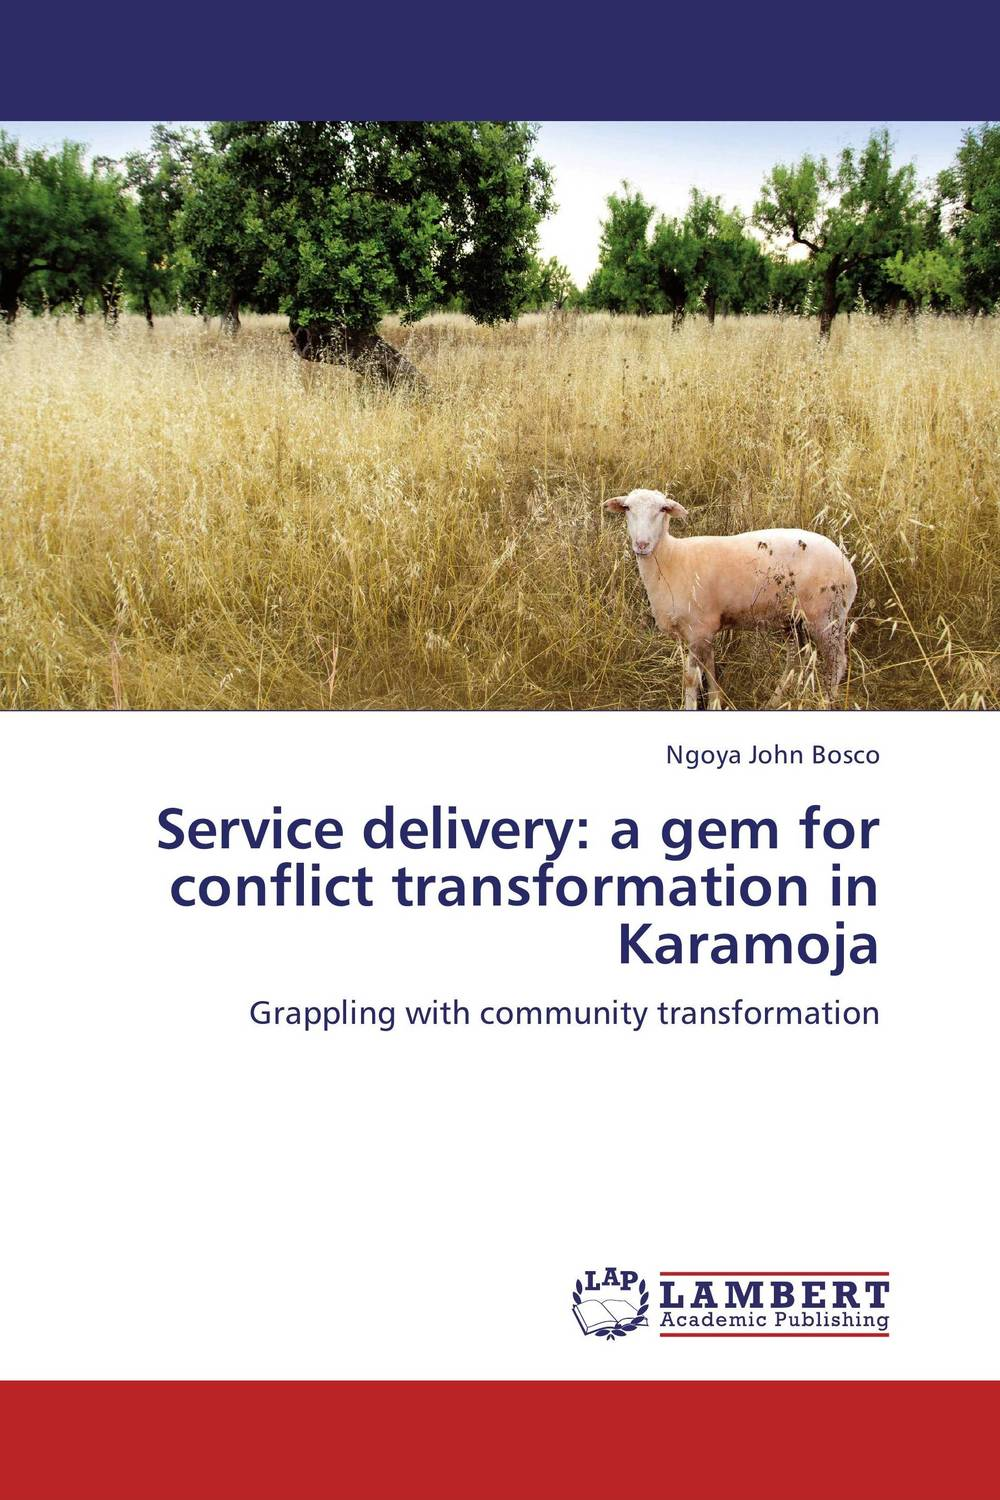 Service delivery: a gem for conflict transformation in Karamoja maureen a adoyo health service delivery in kenya